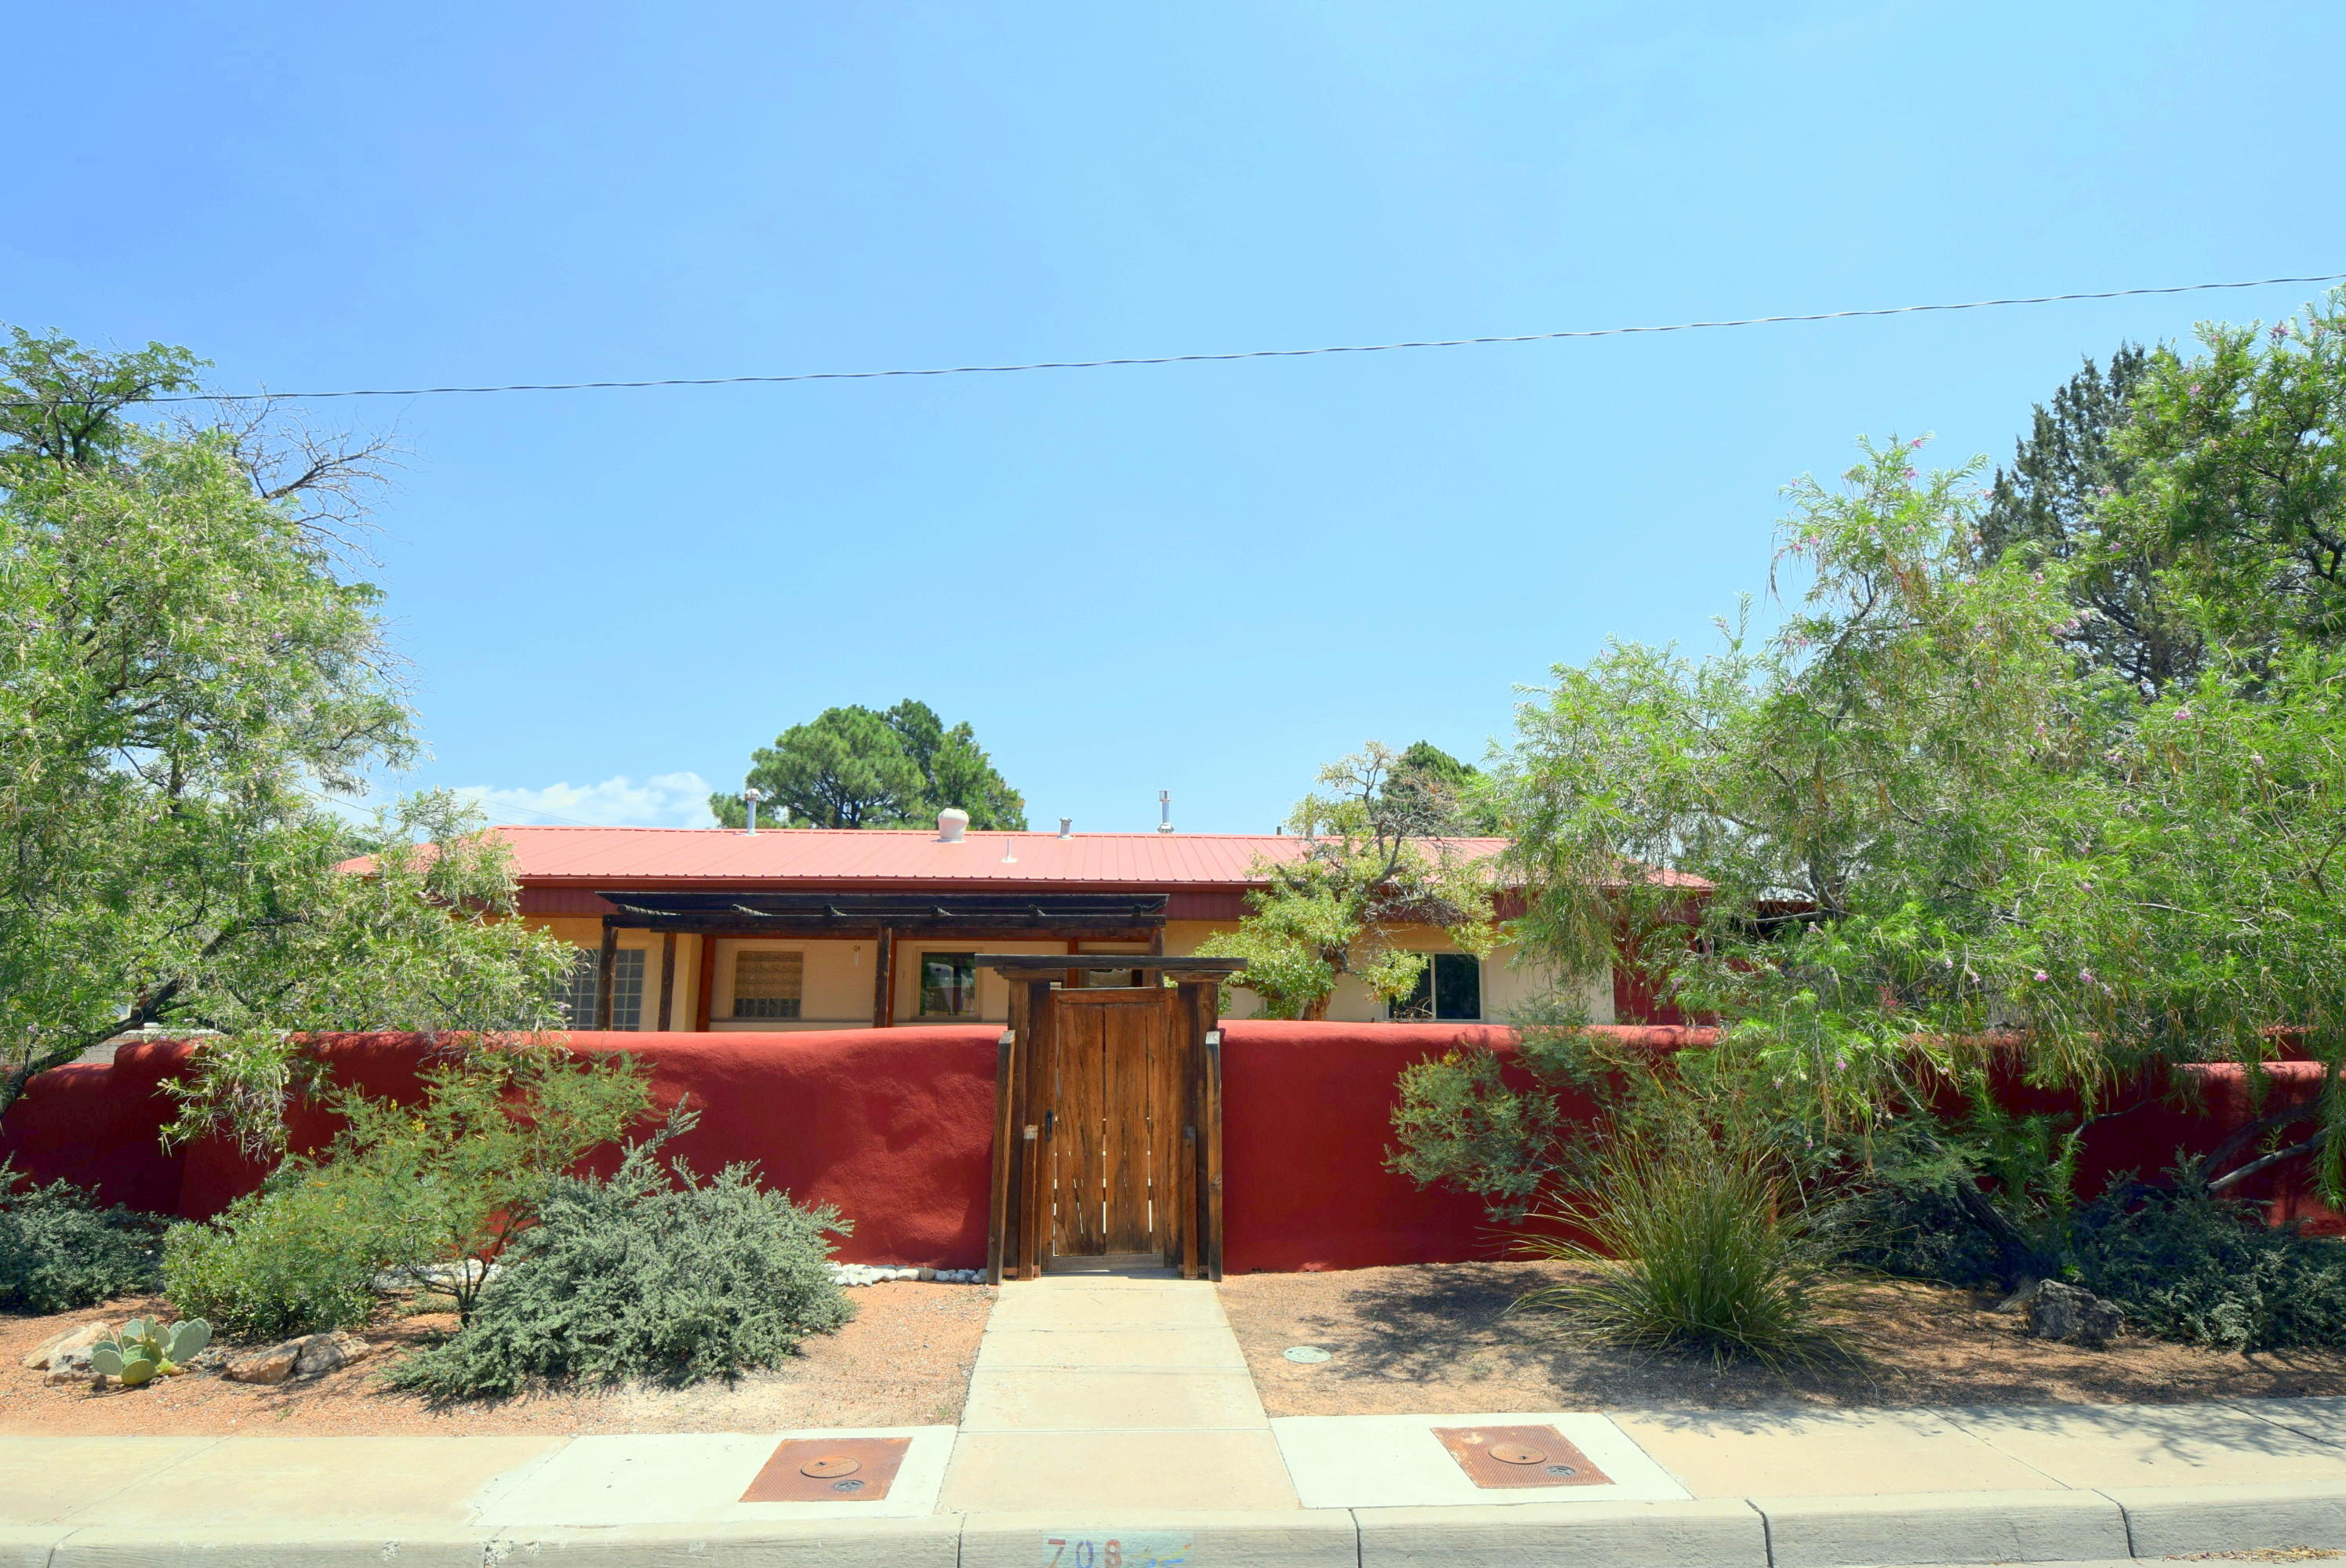 Charming home near Nob Hill, UNM, Downtown, Big I, etc.!!! Great location! Hobbyist delight! Detached studio / office 424 sq ft. Four car tandem garage with shop space, 1,164 sq. ft.! Remodeled kitchen with miles of beautiful cabinets and granite countertops! Three wood decks adjacent to living spaces and outdoor enjoyment areas!